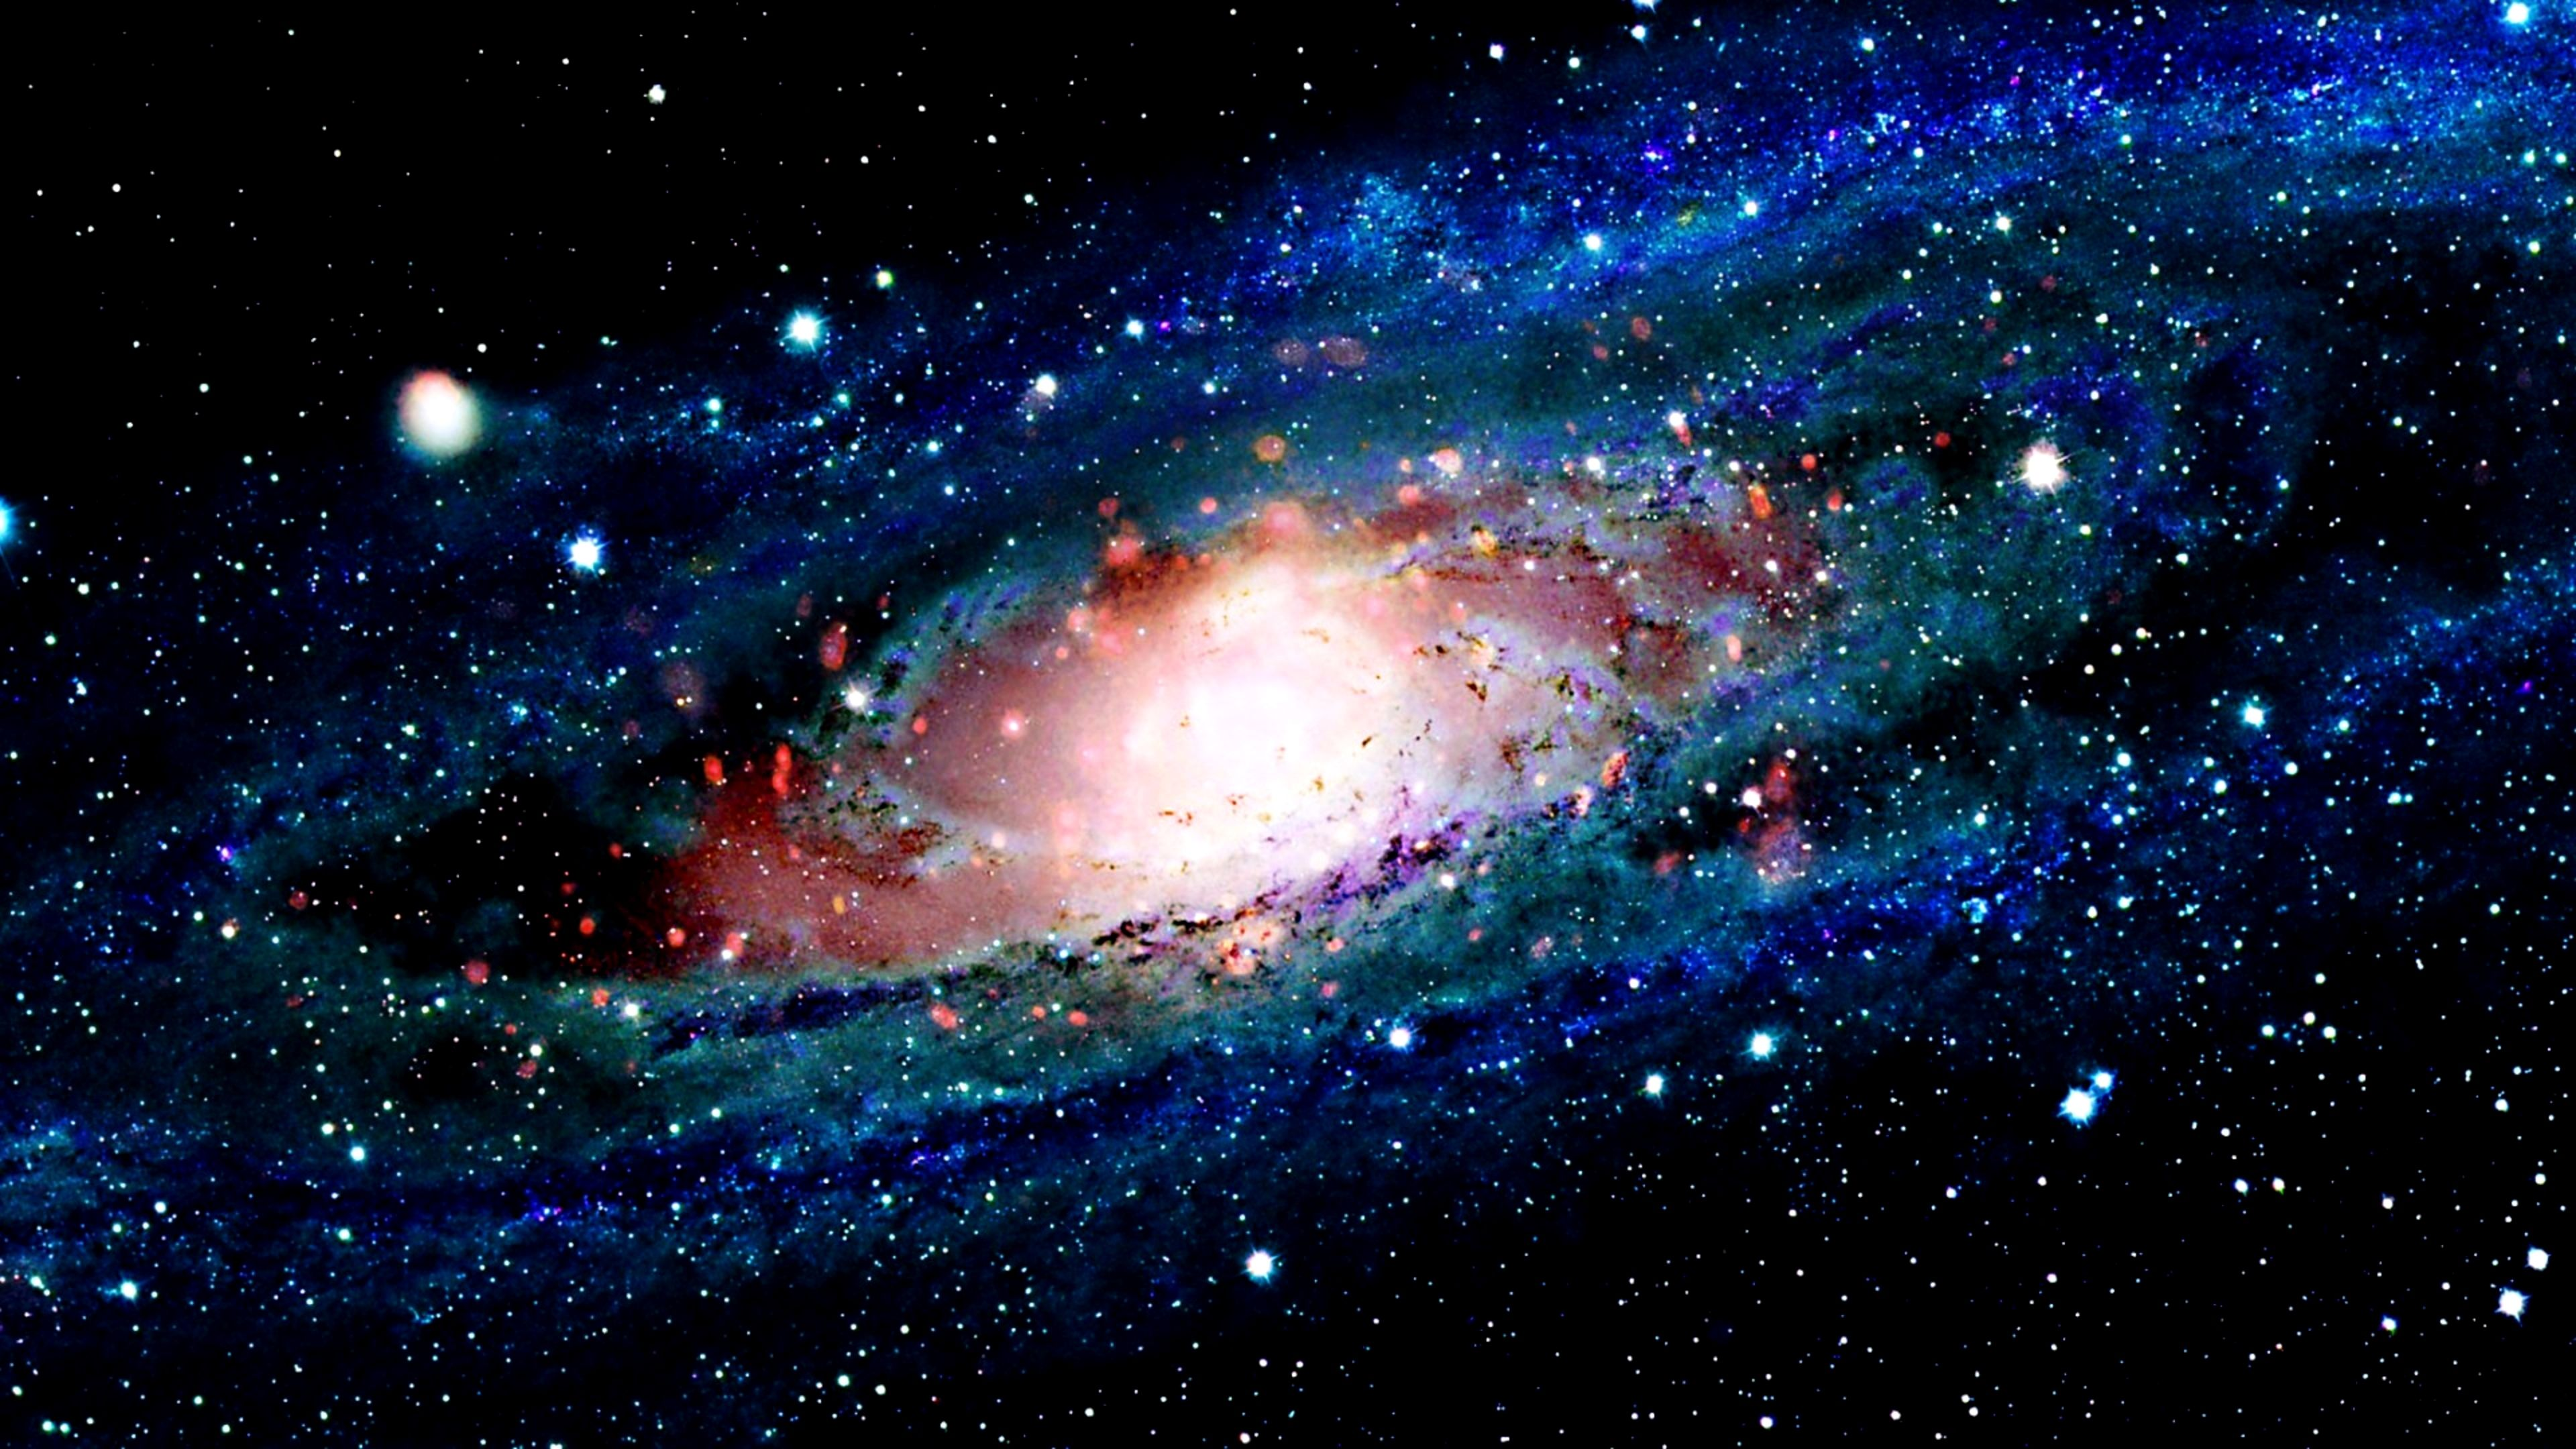 4k Ultra Hd Universe Space Pictures Hd Wallpaper